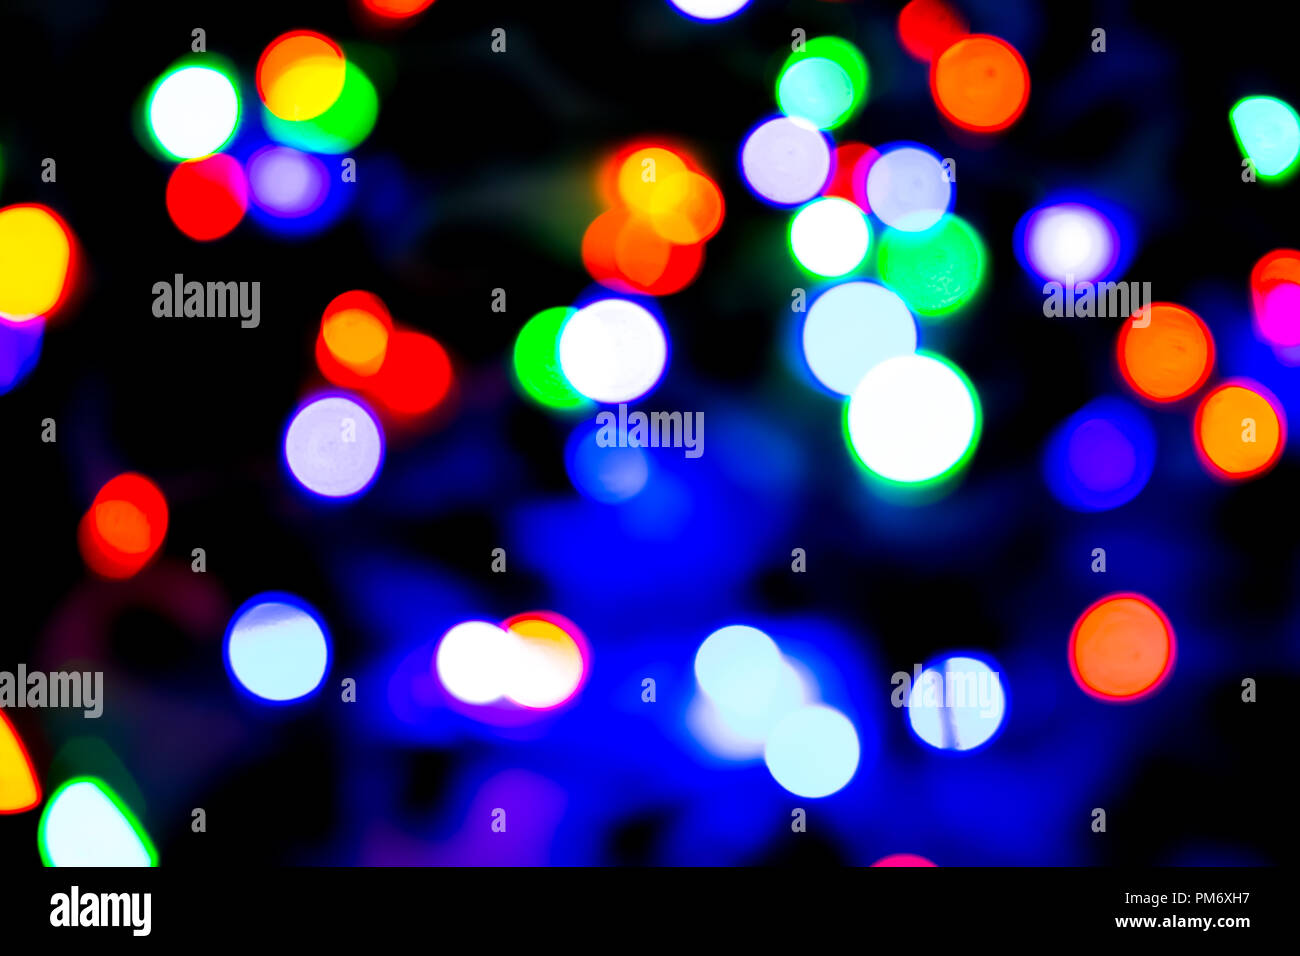 Colorful Christmas Lights Aesthetic.Blurred Background With Colorful Bokeh Lights On Dark Purple